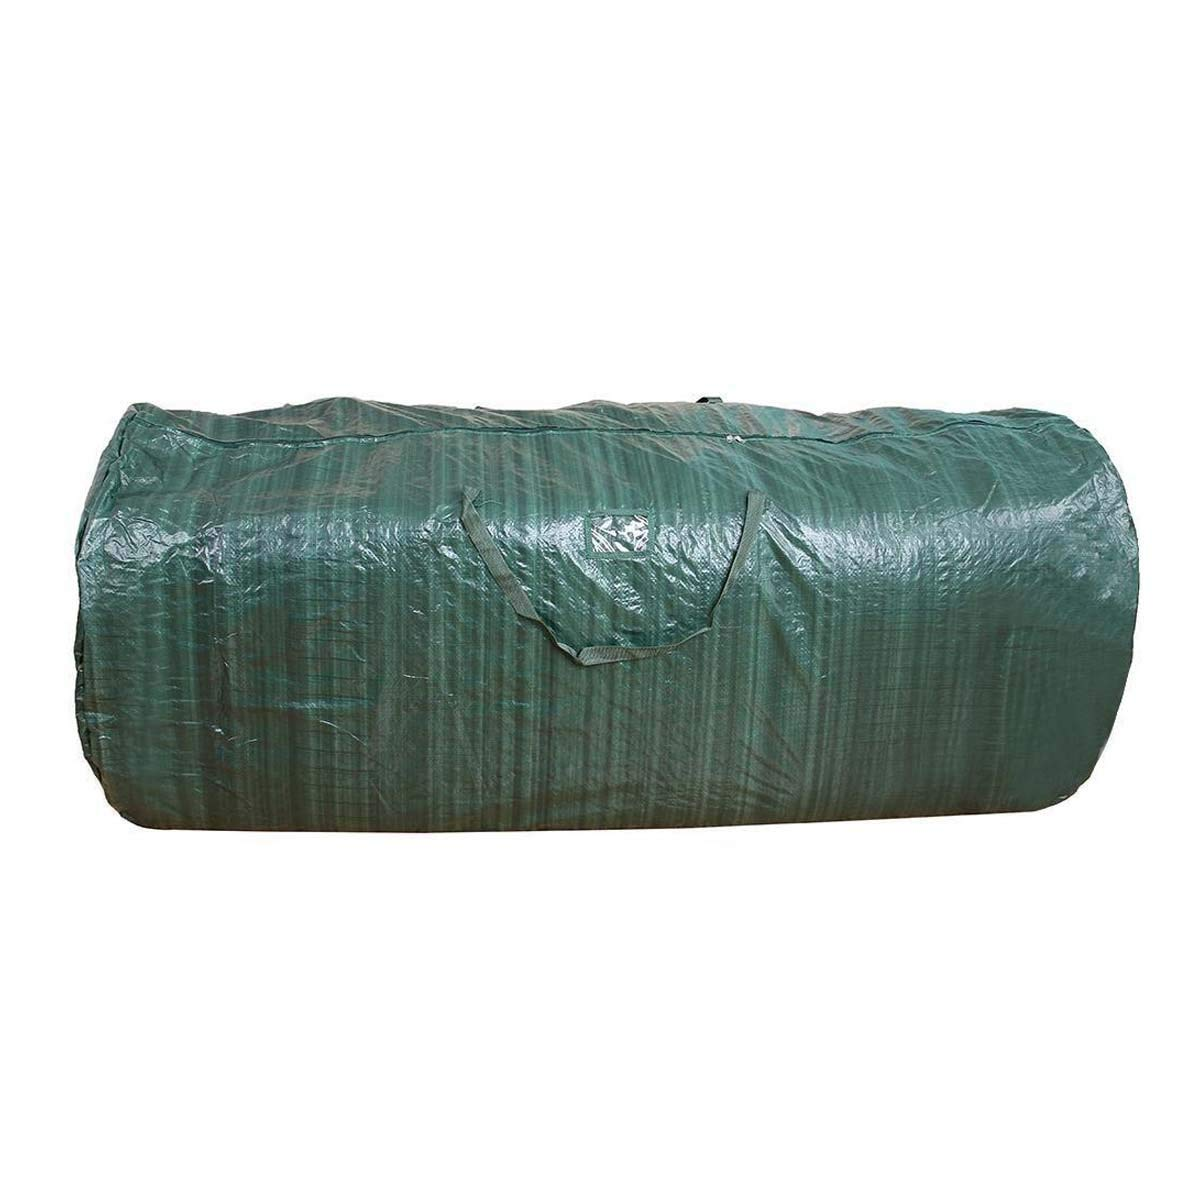 Christmas Tree Storage Bag Upright Deluxe Heavy Duty Holiday For 9 Ft.Trees - polypropylene (Dark Green)